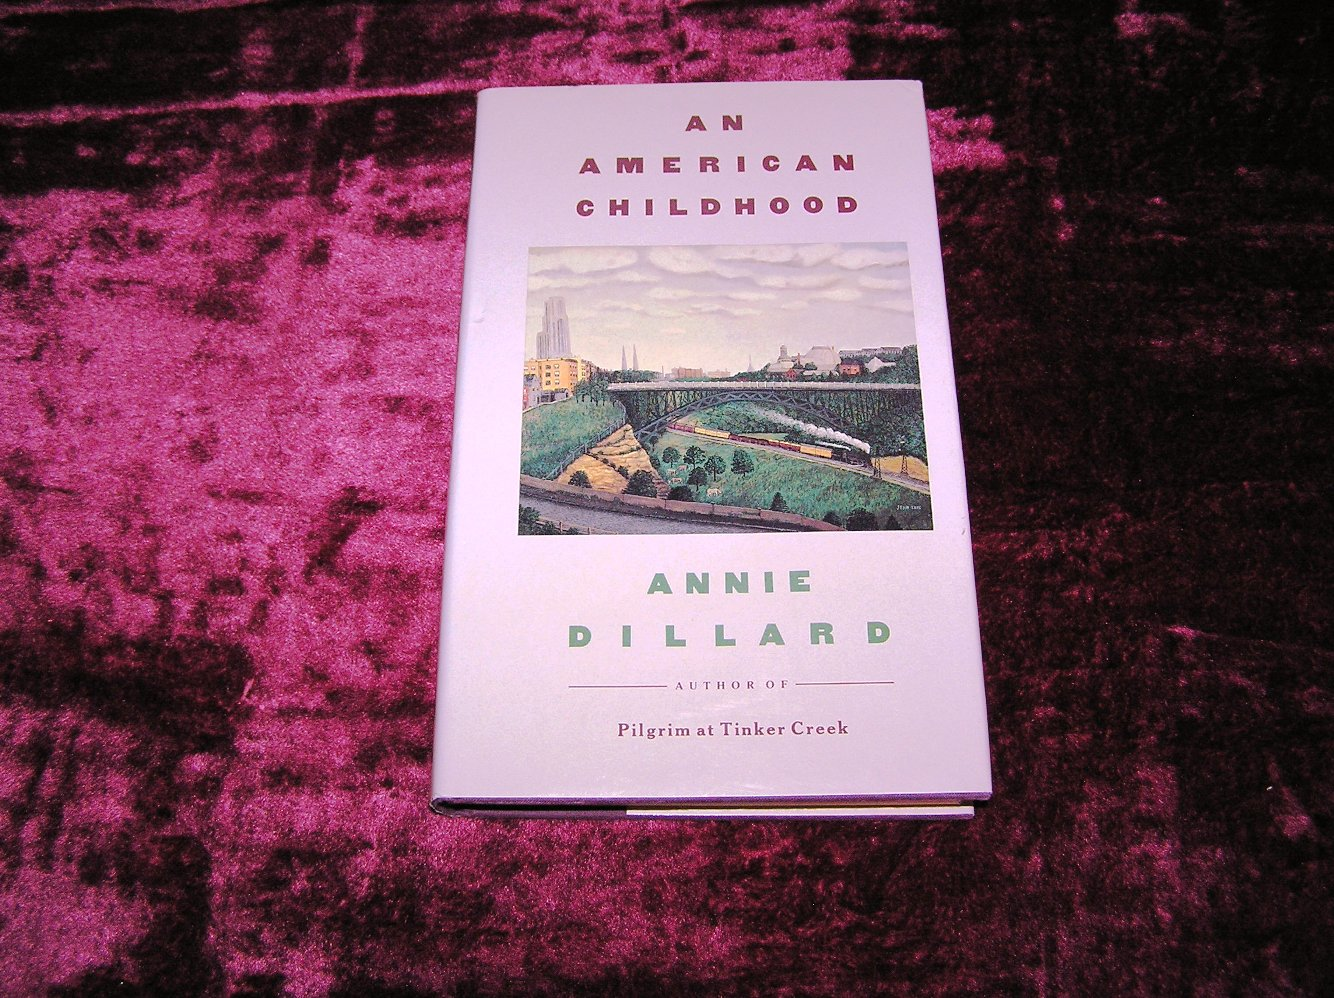 annie dillard an american childhood Annie dillard is an american author , known to create fictional and non-fictional  stories so far, she has published works of poetry like,.